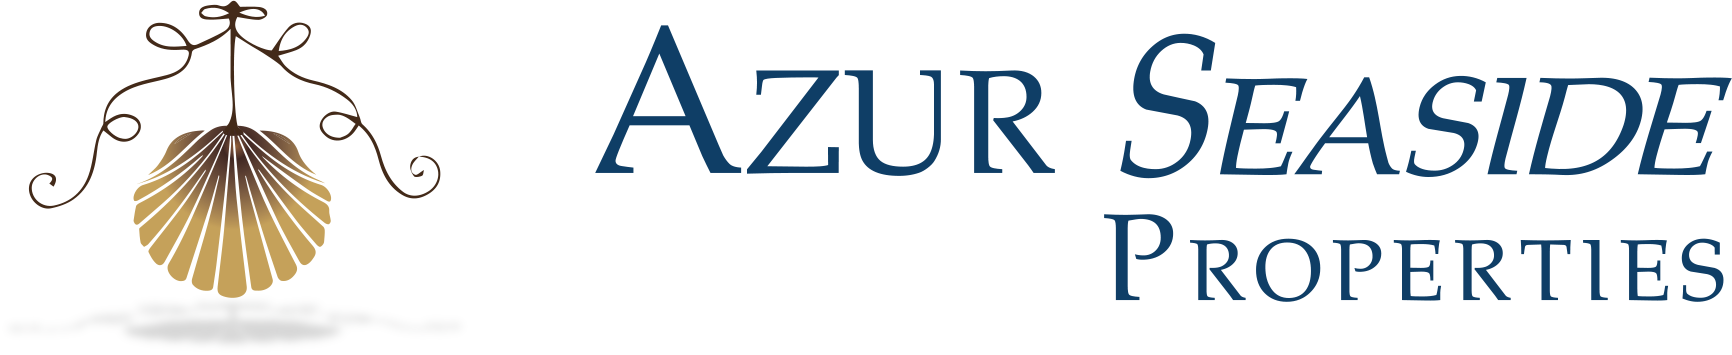 Azur Seaside Properties